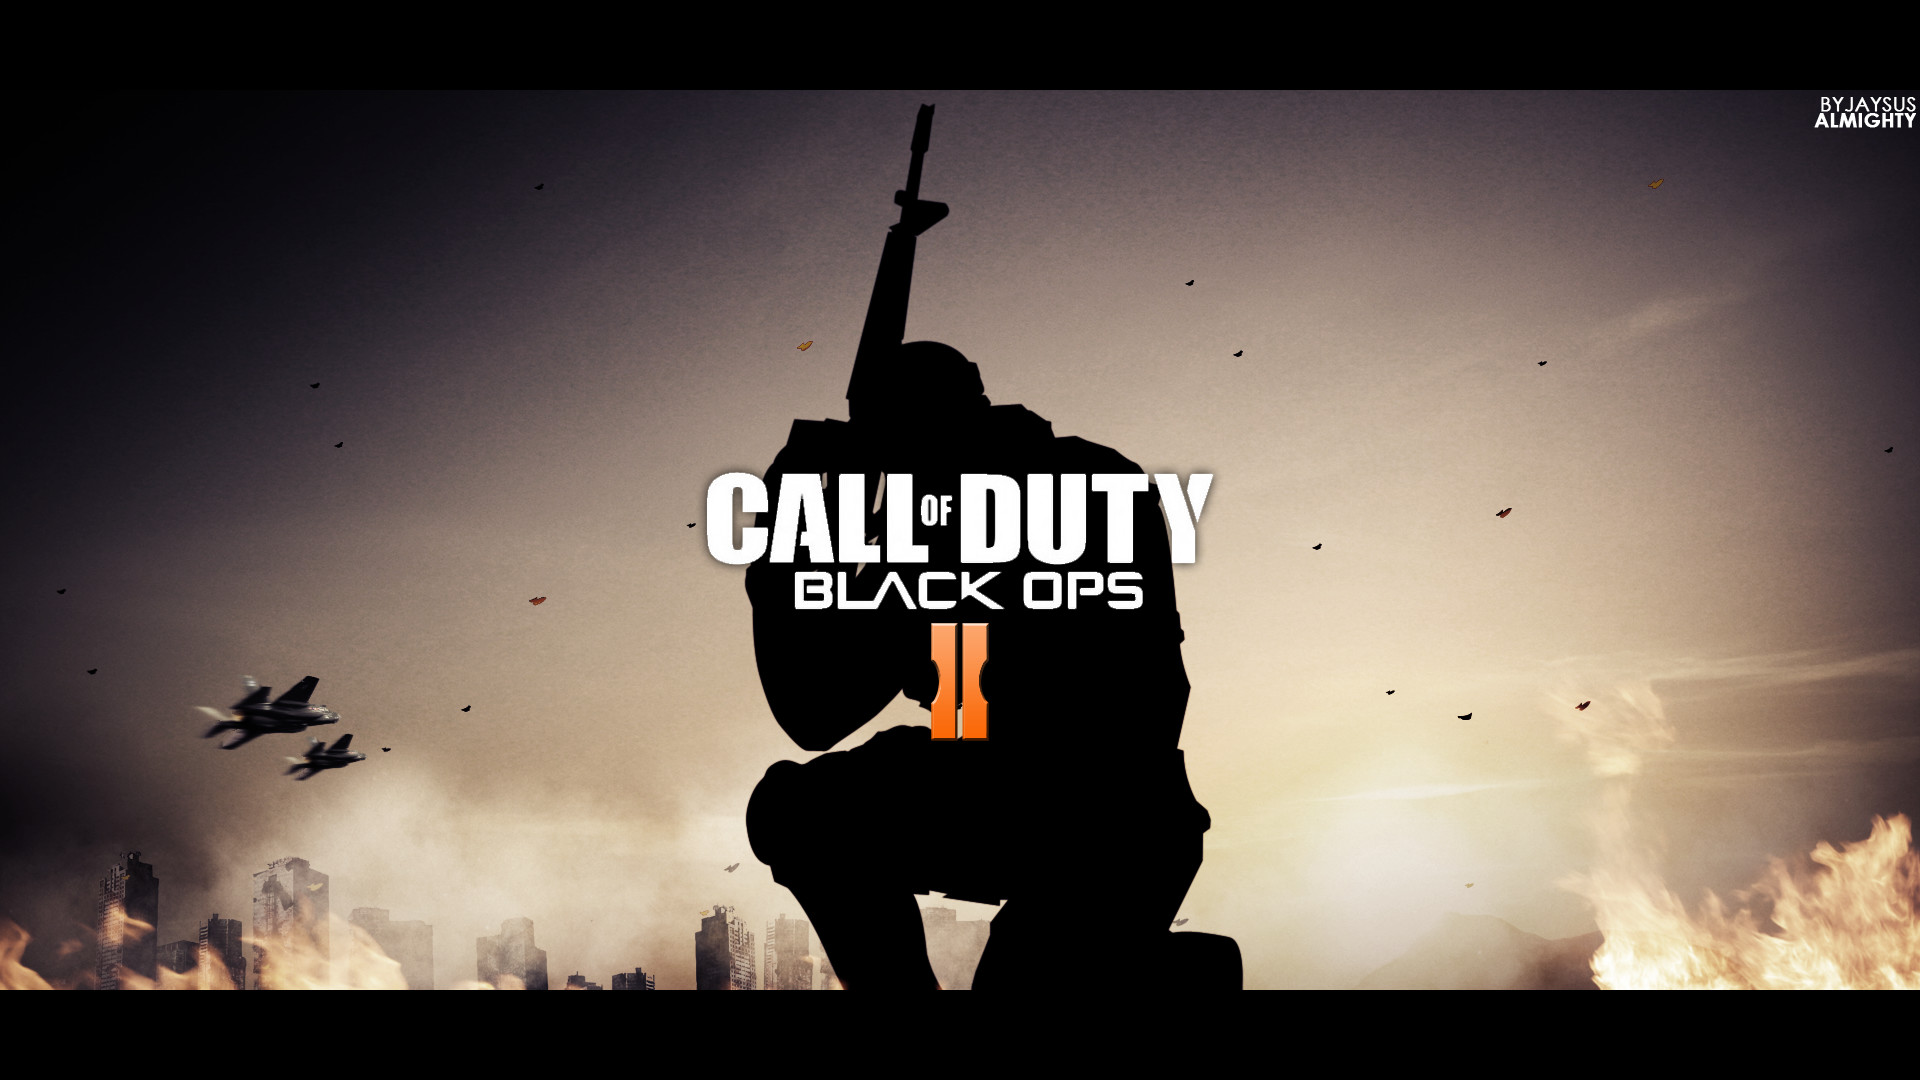 1920x1080 Call of Duty Black Ops 2 Wallpaper